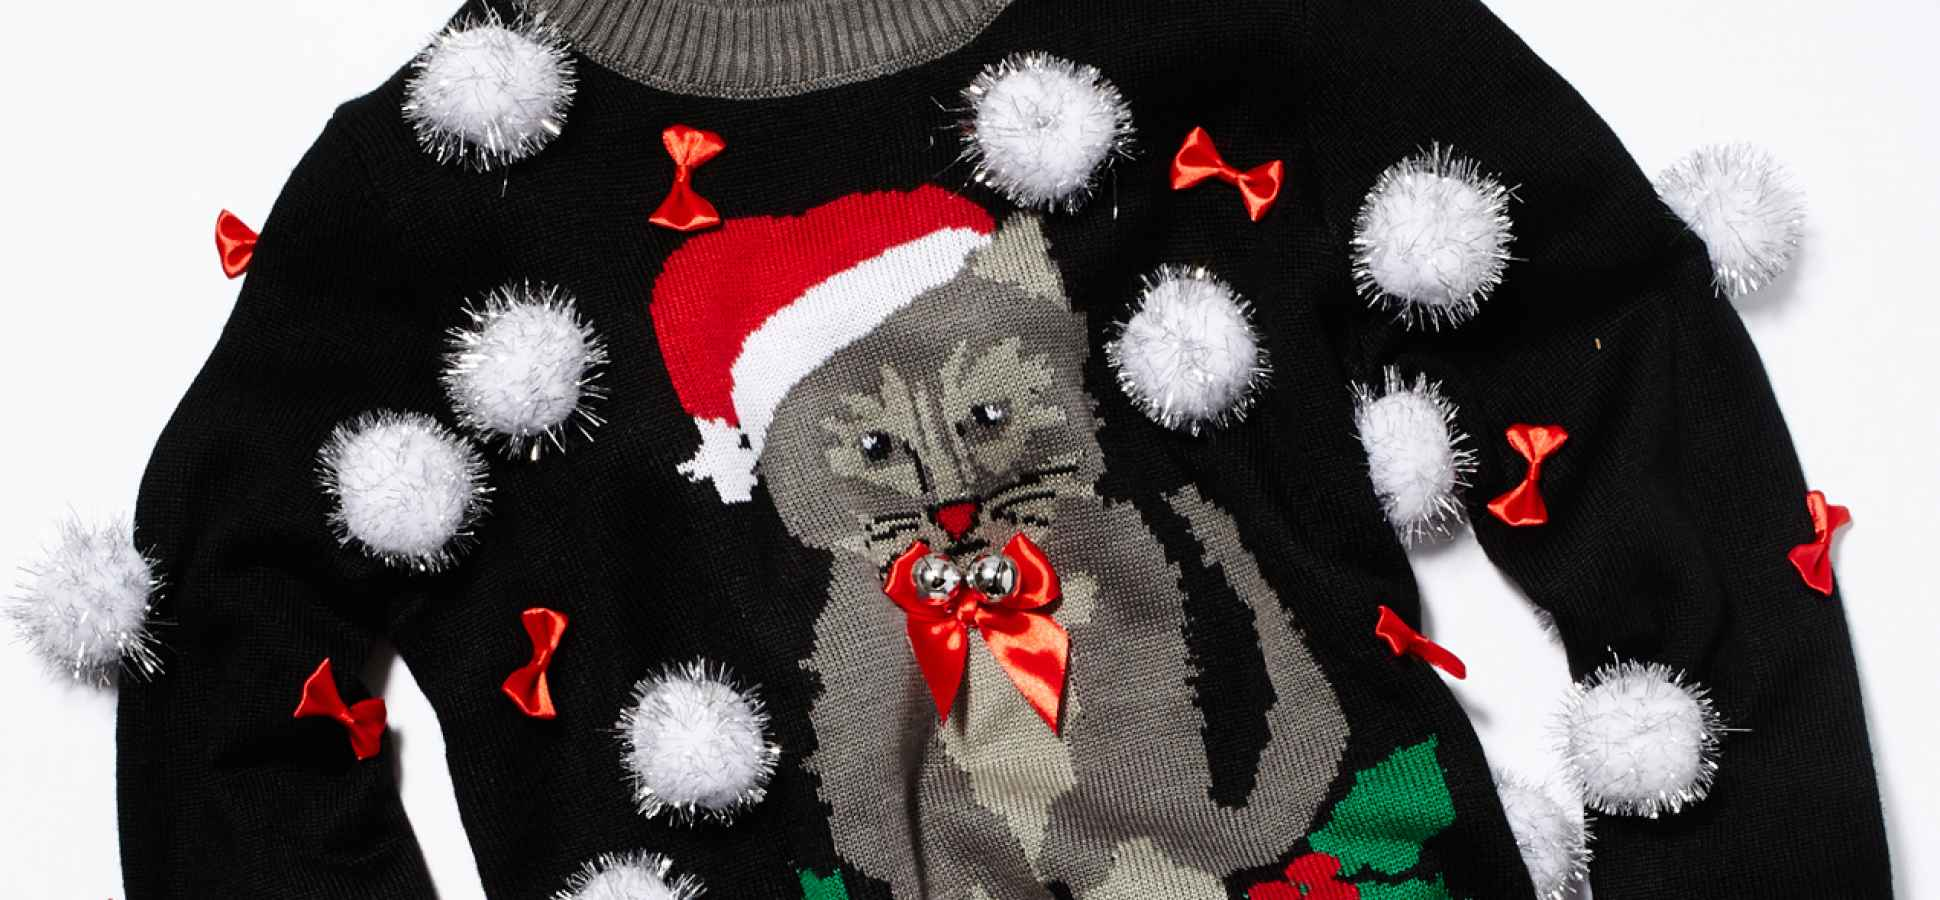 Where to Get Your Risque Ugly Holiday Sweater Fix | Inc.com